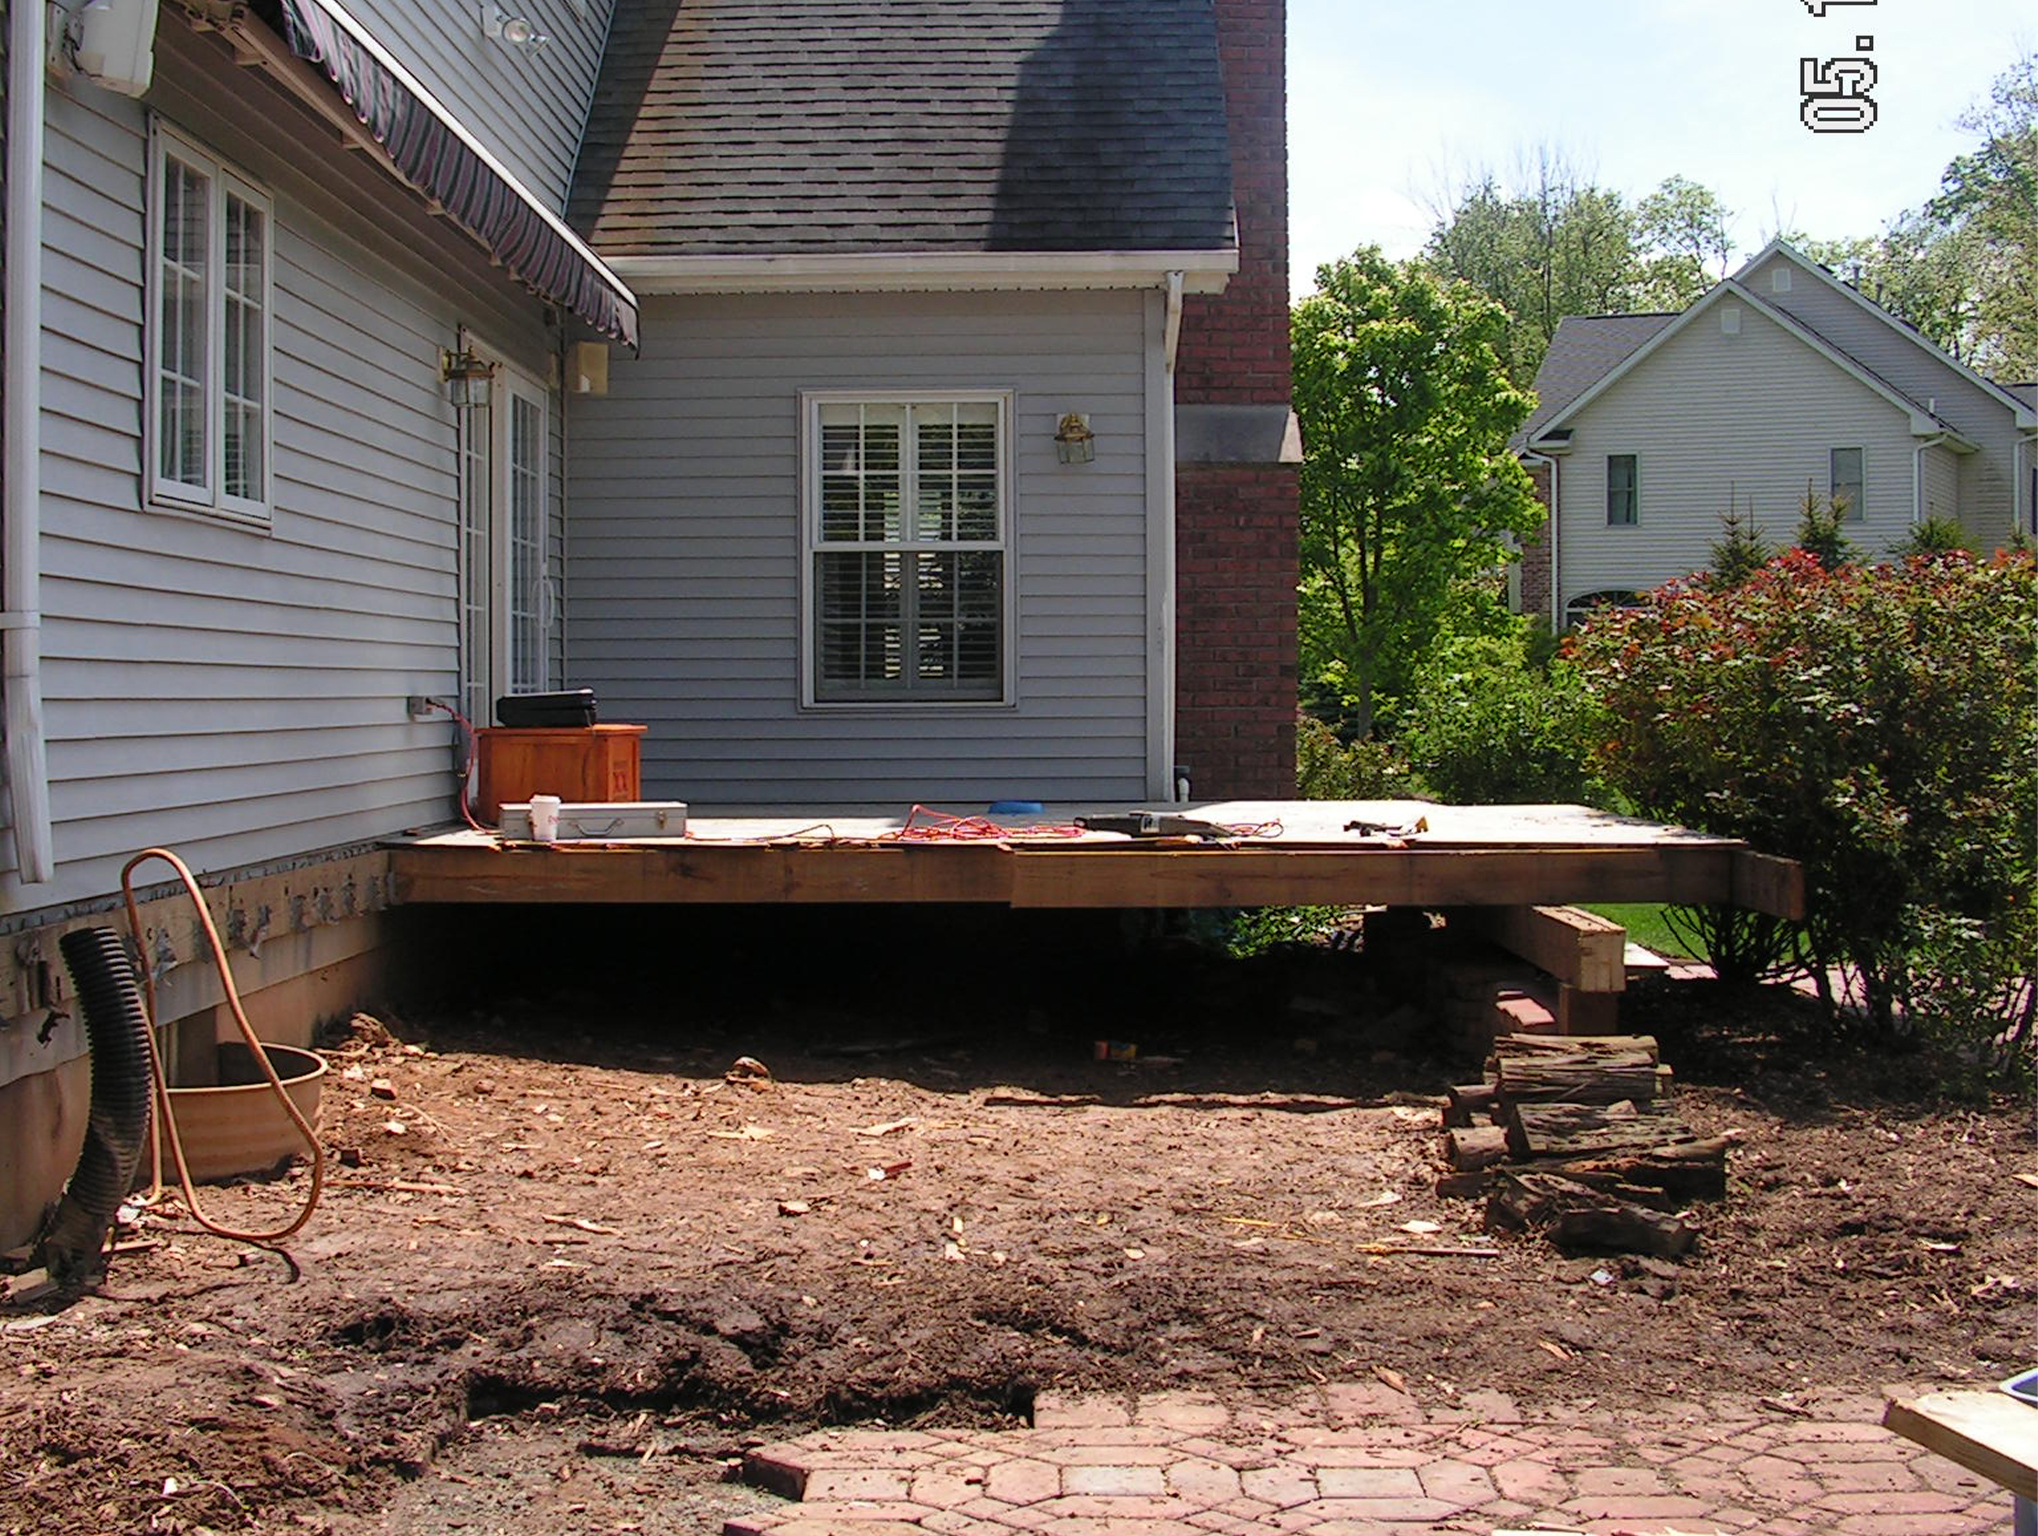 morristown parsippany chatham deck builder nj rms contracting home remodeling